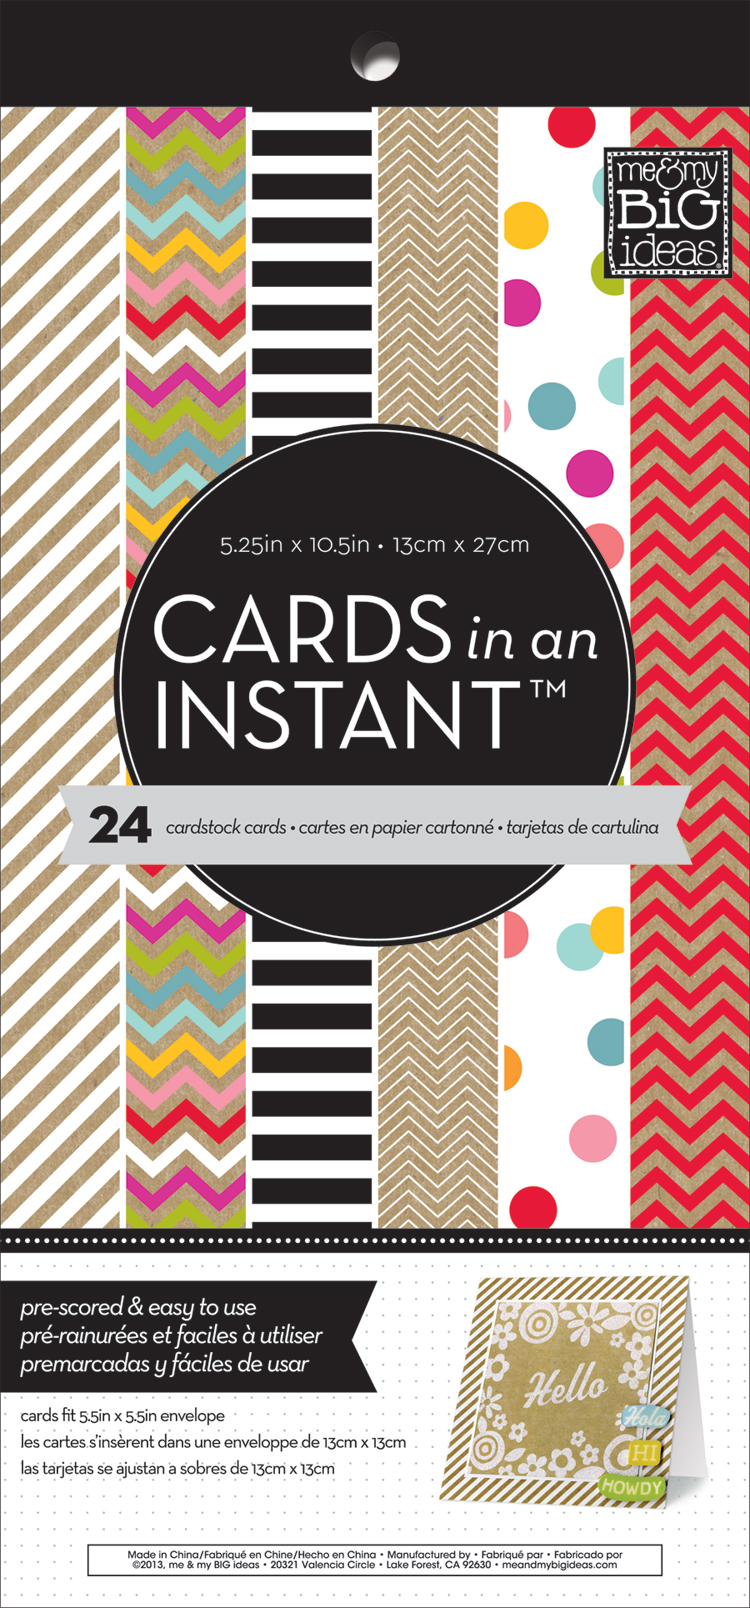 CARDS in an INSTANT mambi pre-cut, pre-scored square cards.